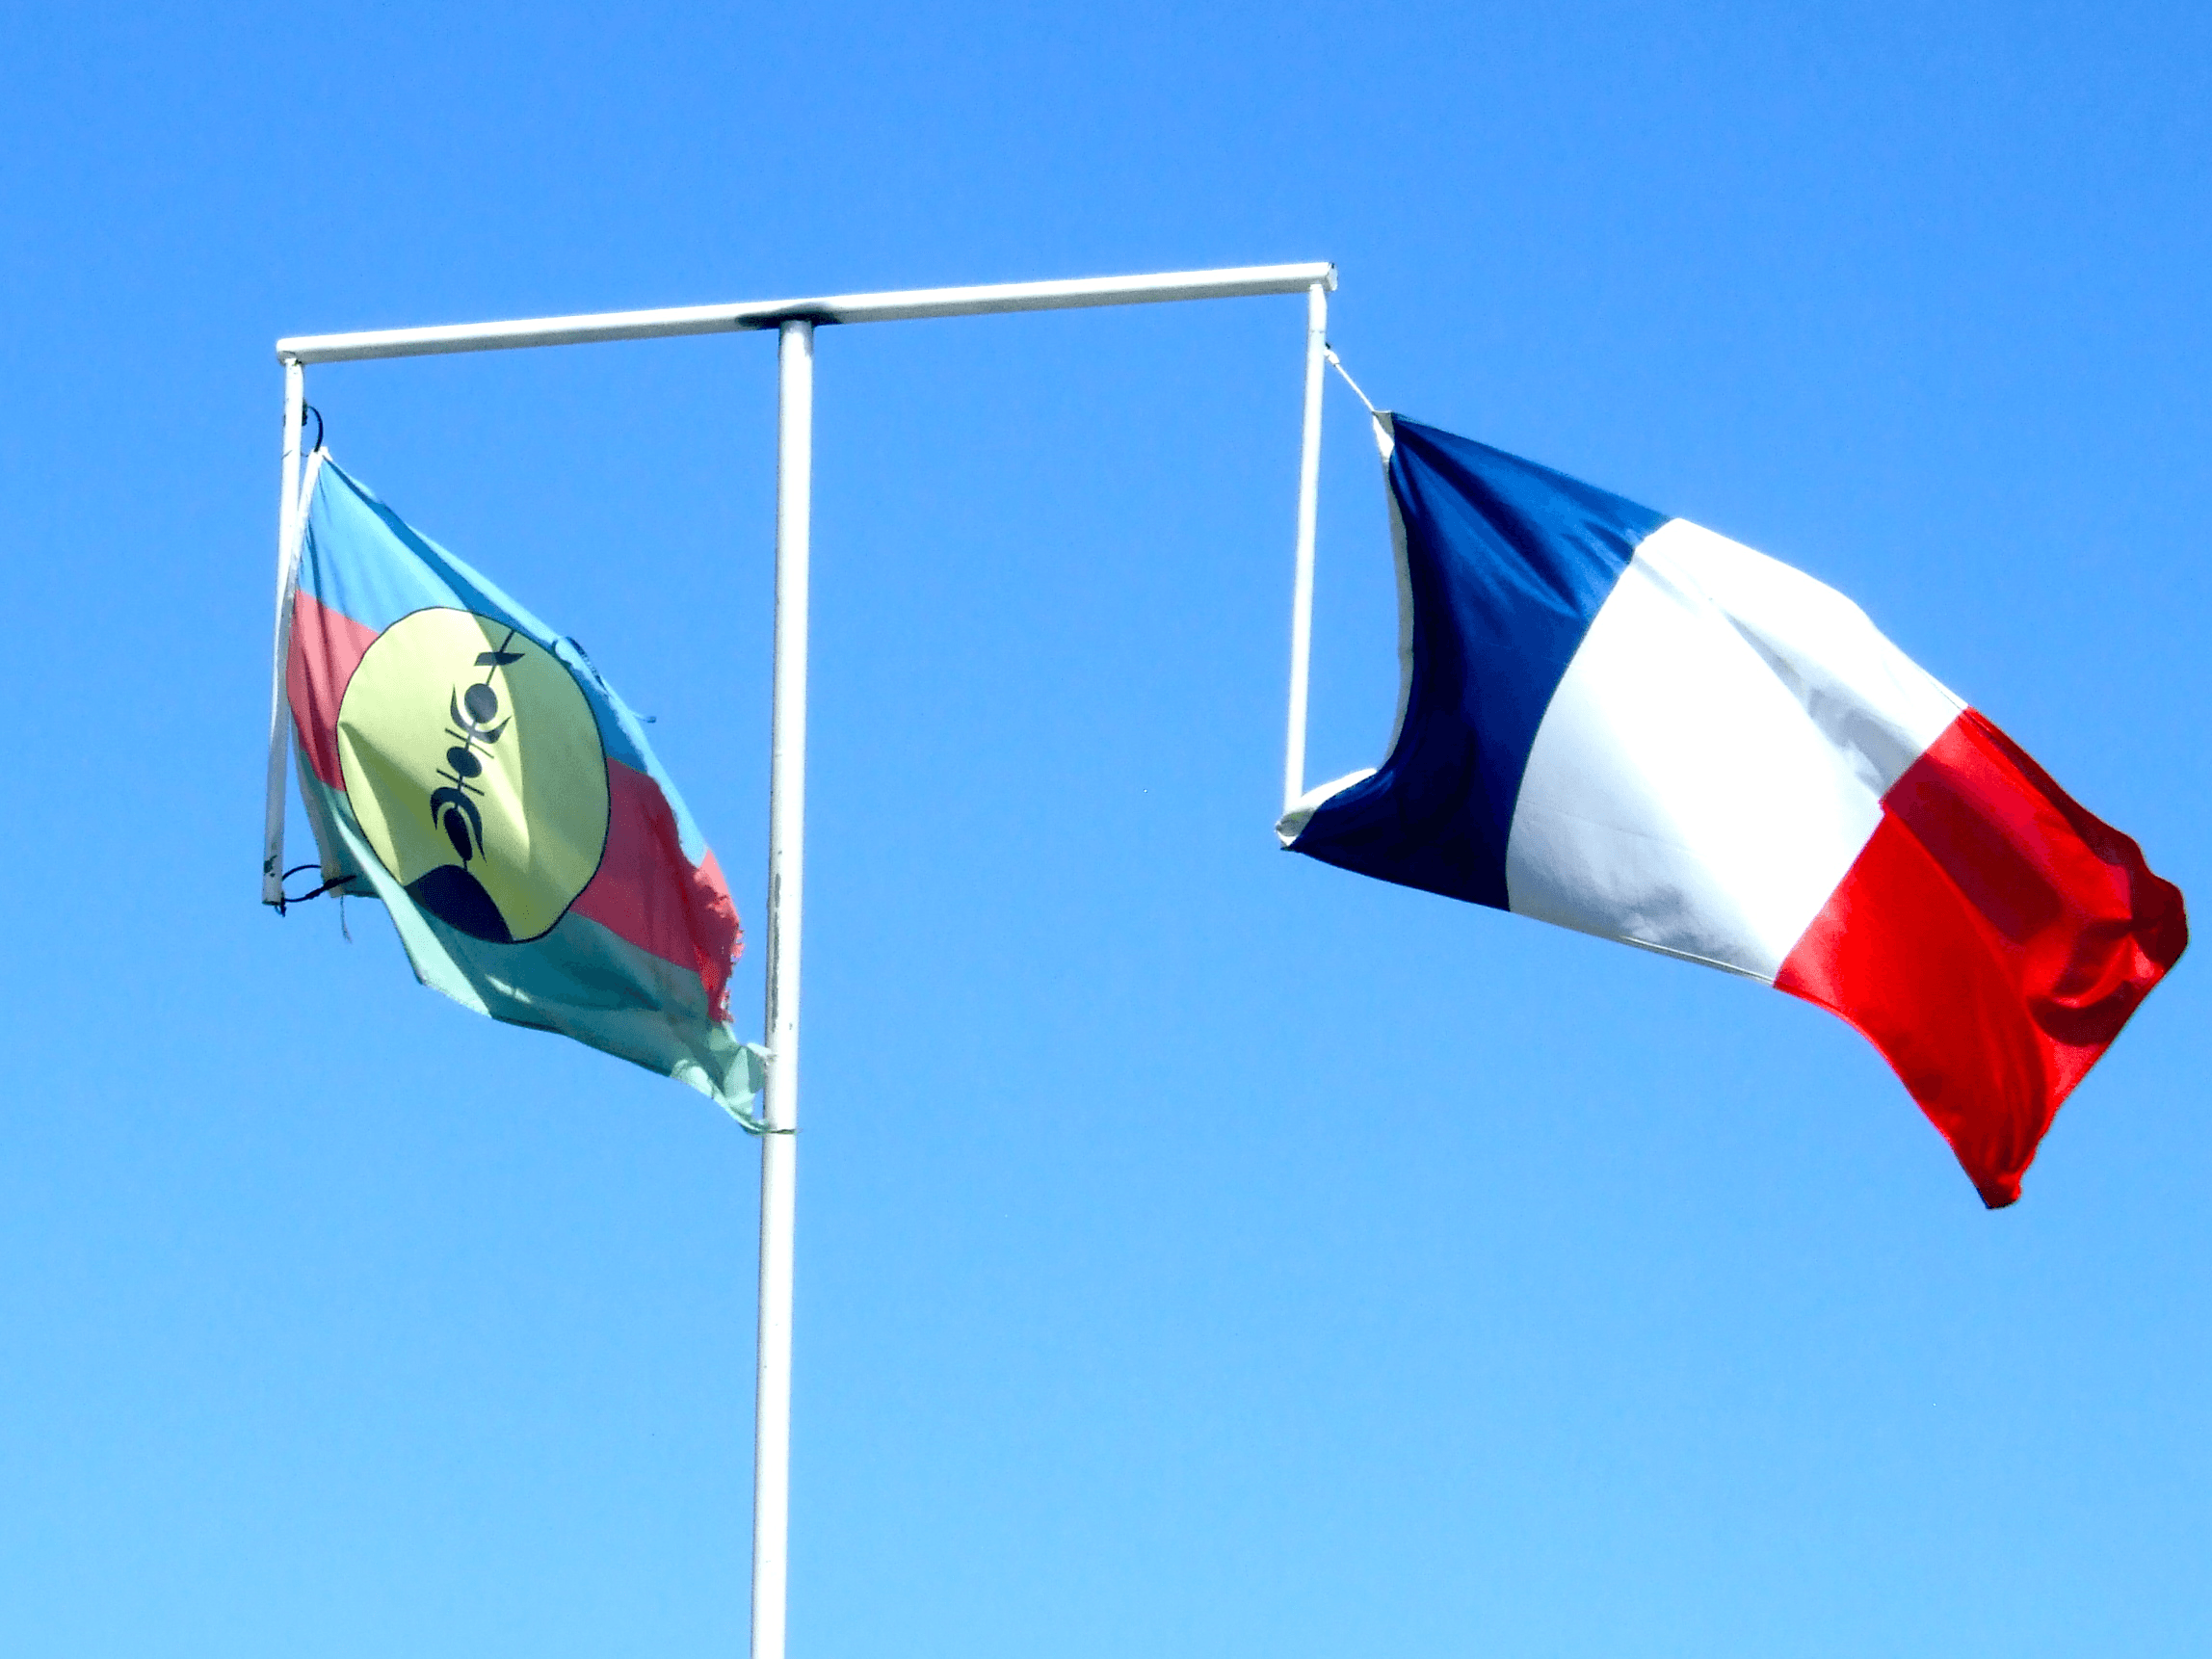 Two official flags of New Caledonia